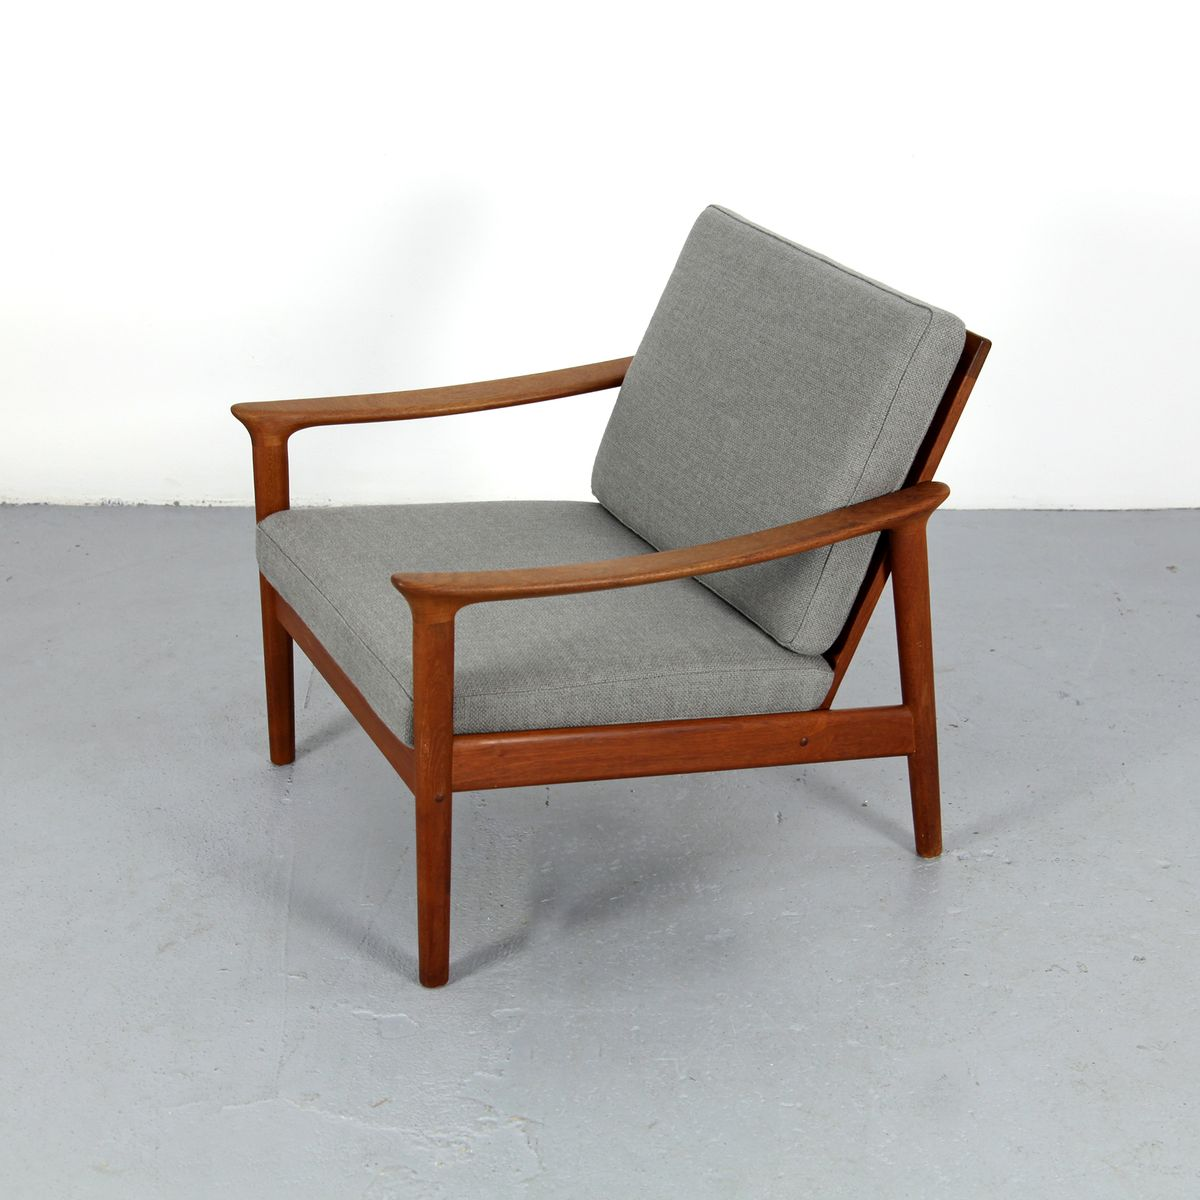 Grey Danish Teak Armchair, 1970s for sale at Pamono